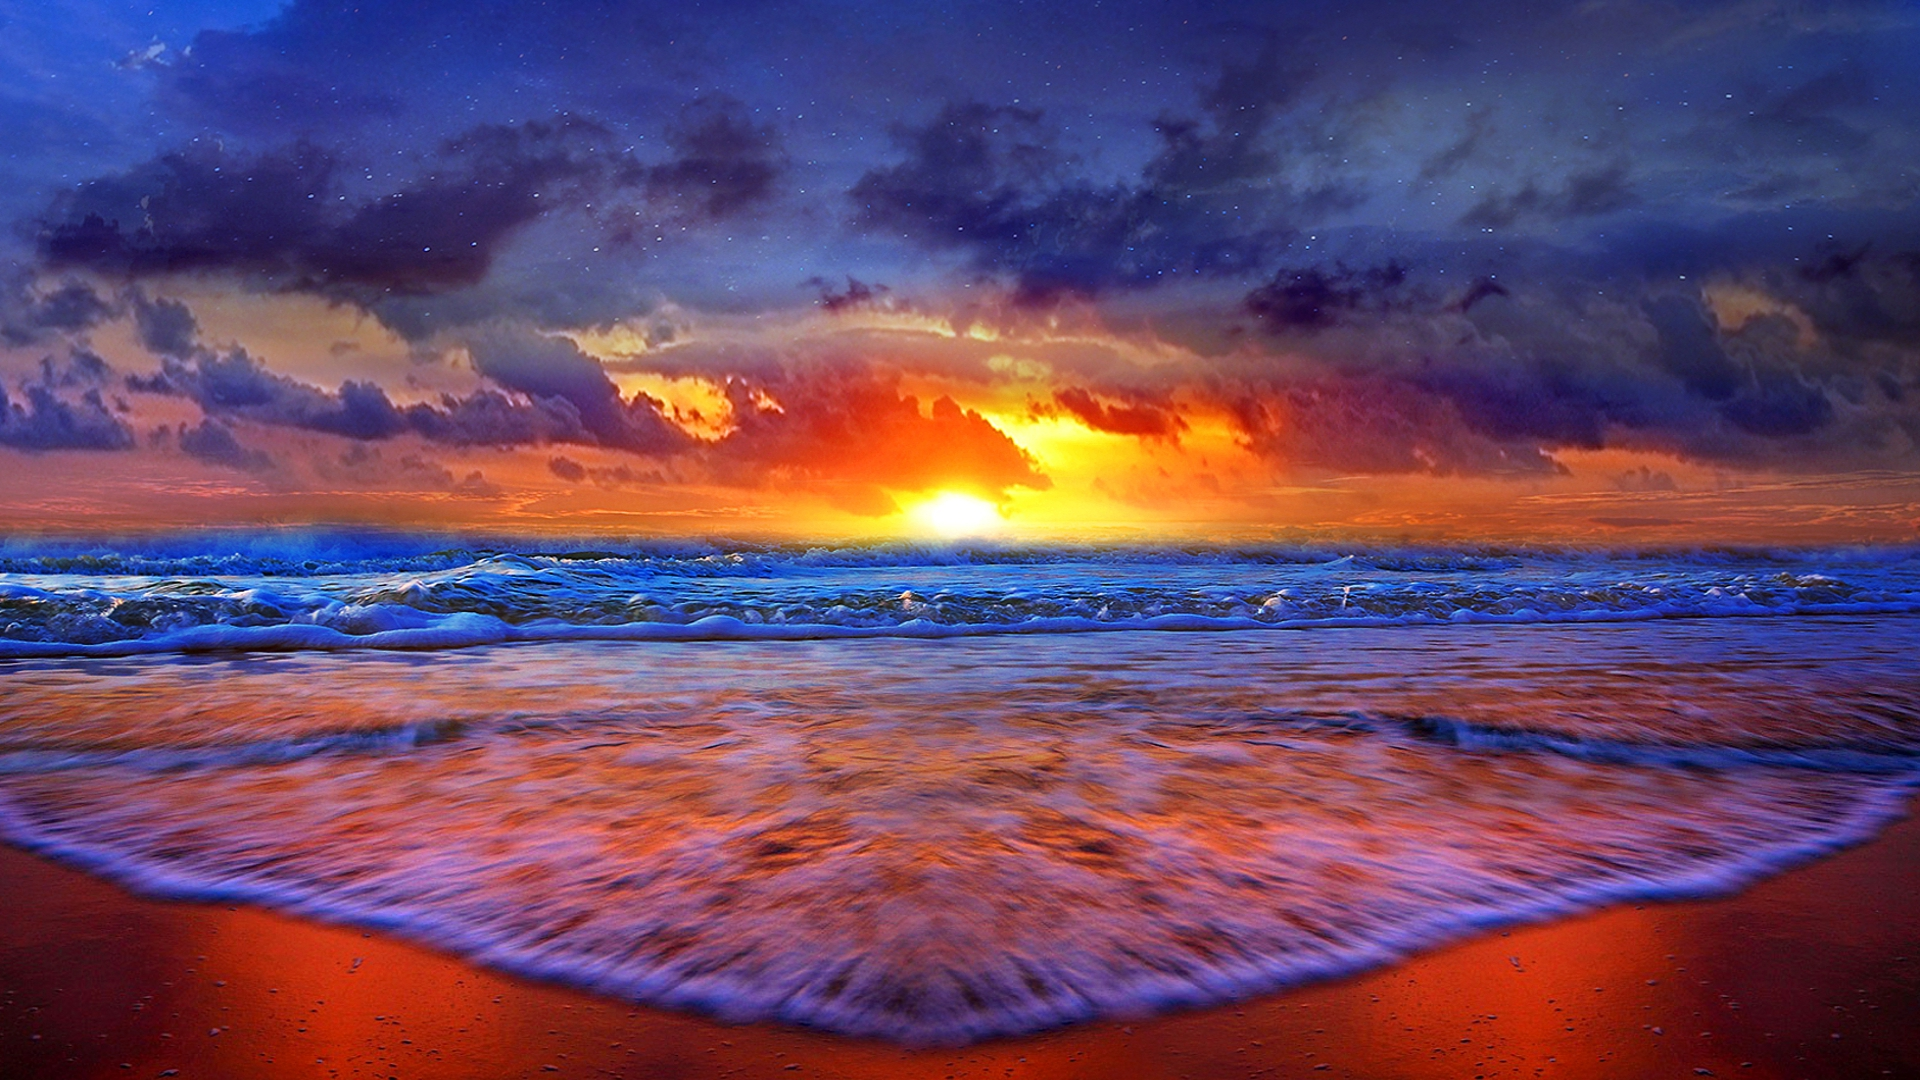 The Sunset HD Desktop Background 1920x1080